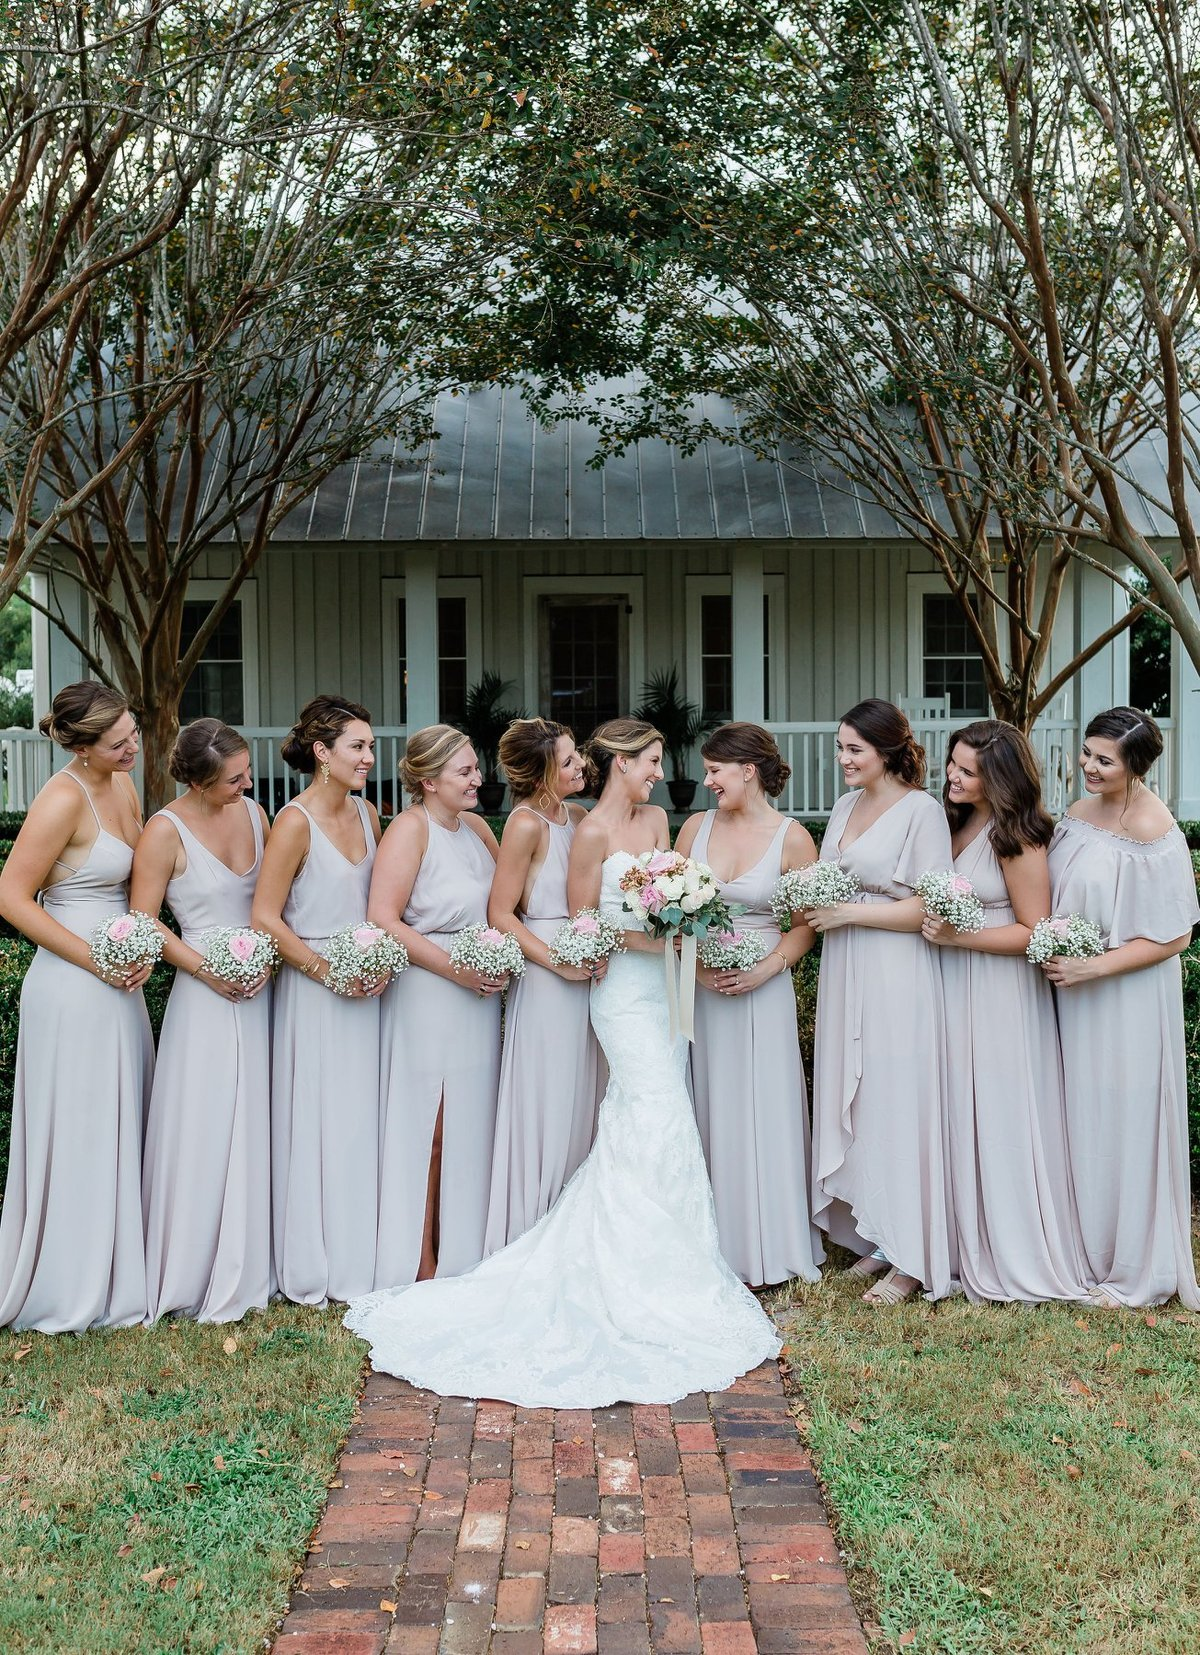 North Carolina Wedding Photography and Video